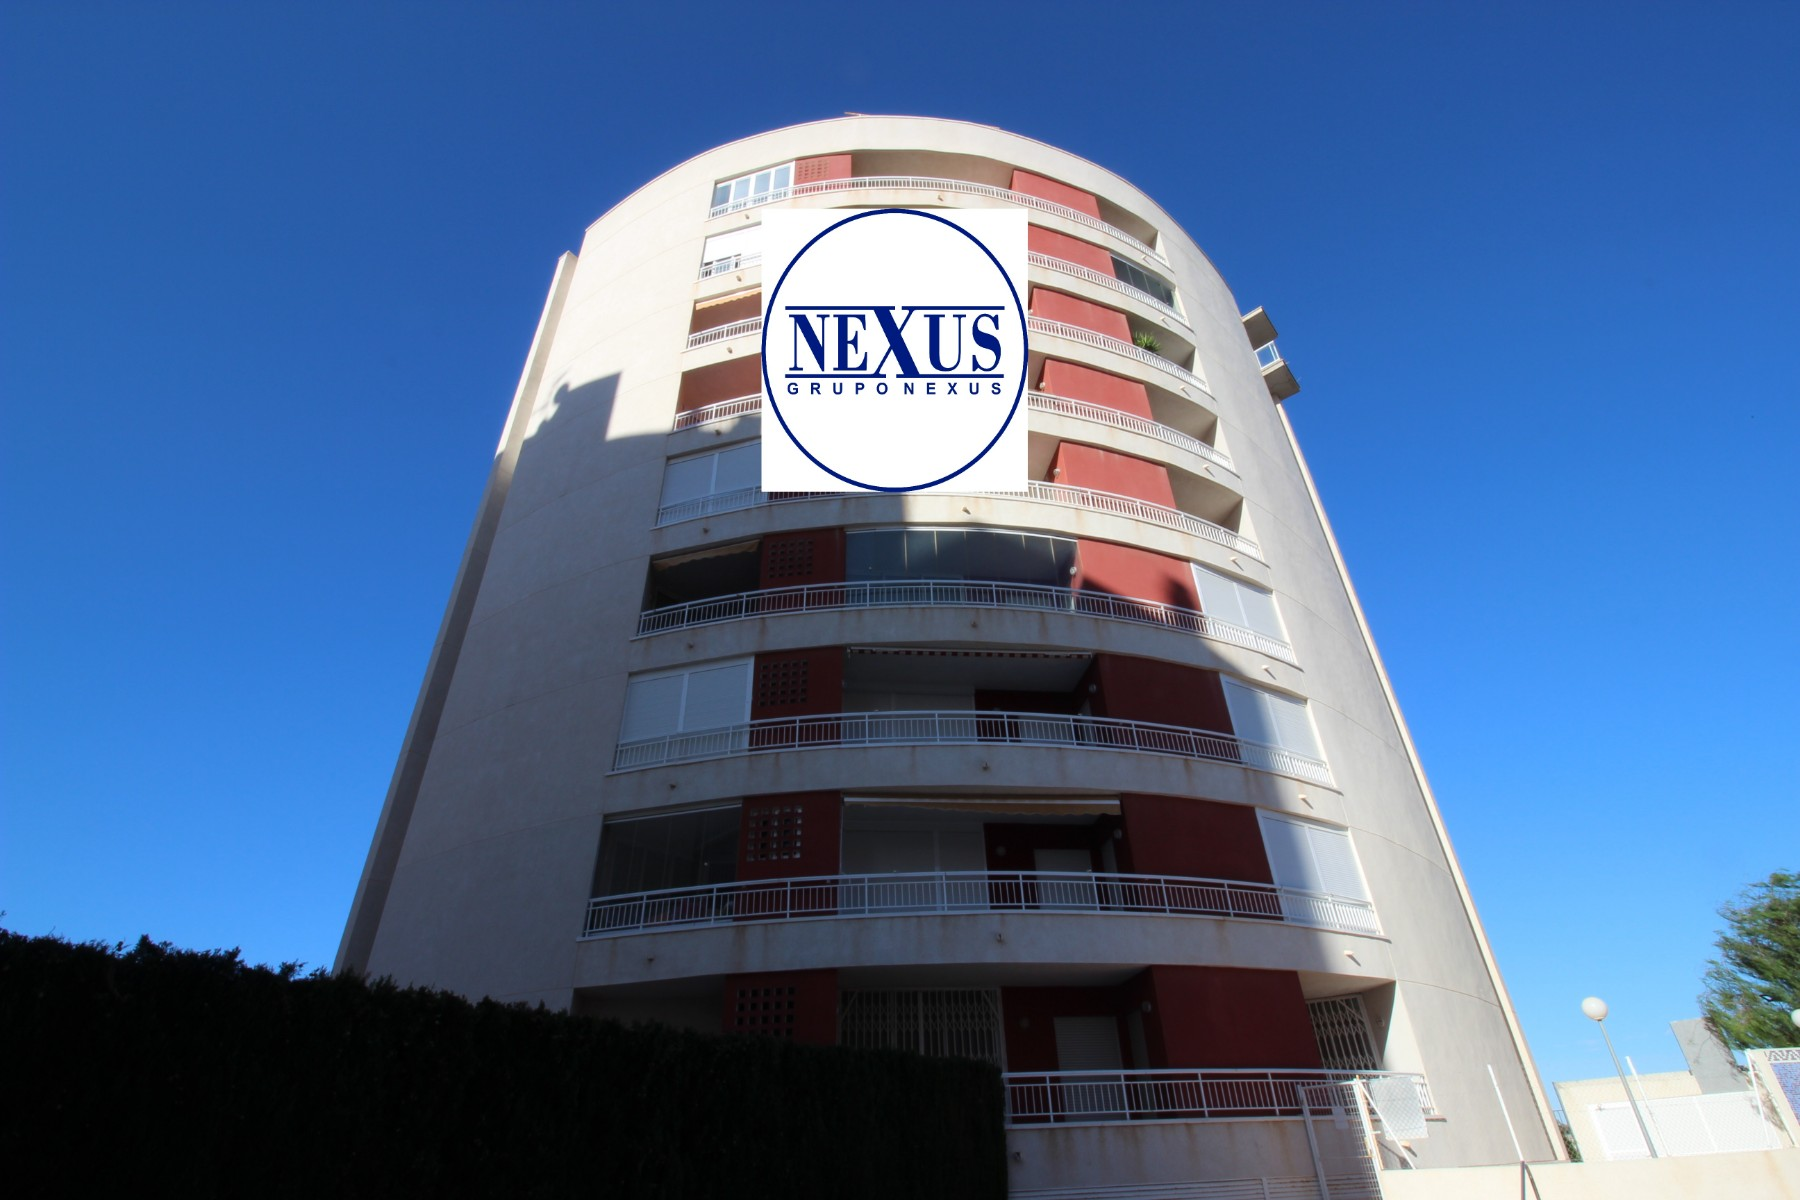 GRUPO NEXUS REAL ESTATE RENT APARTMENT FOR ALL YEAR NEAR THE PUERTO DEPORTIVO in Nexus Grupo